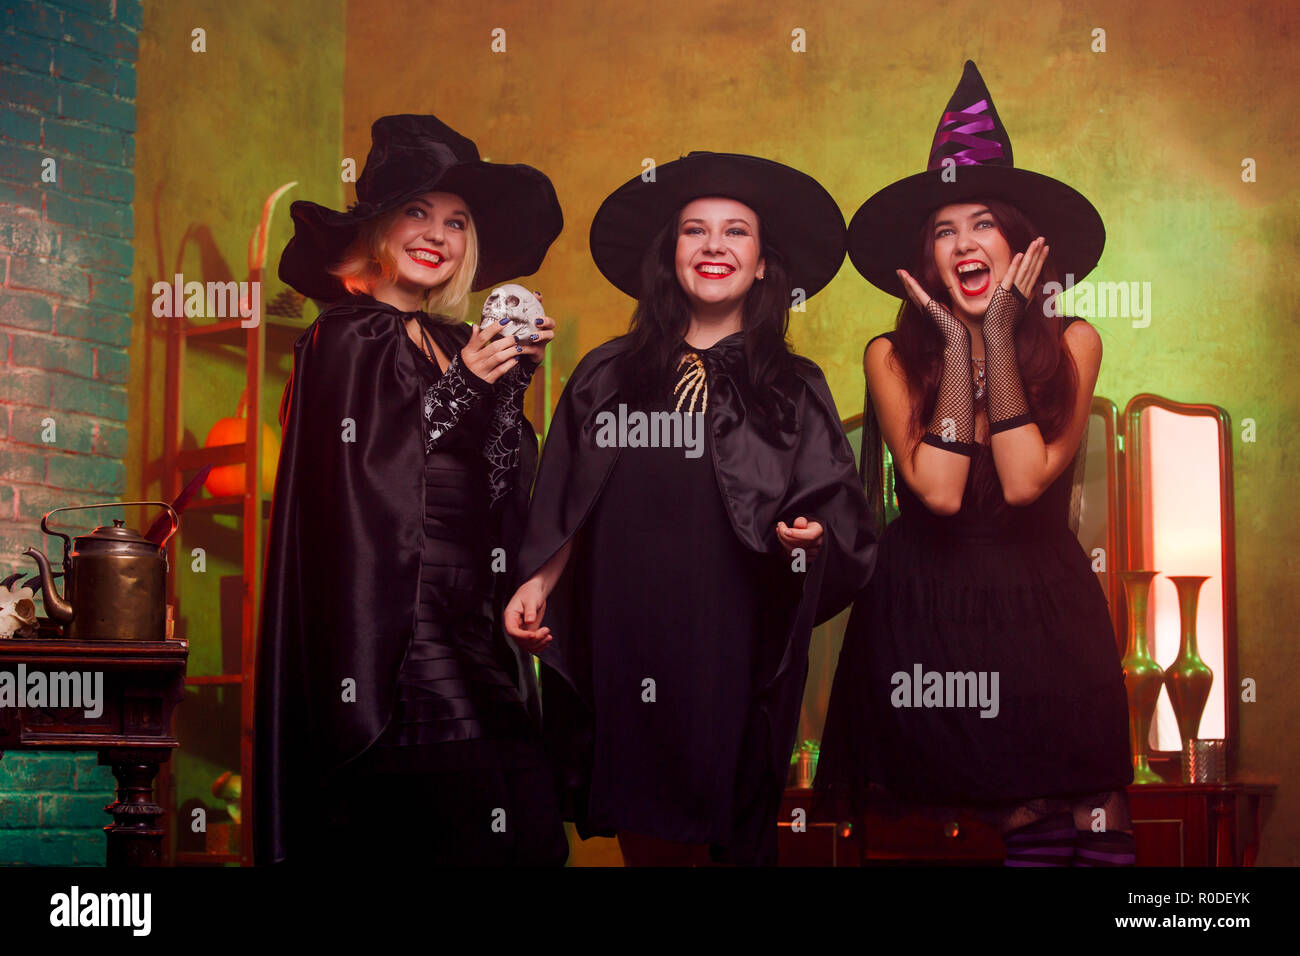 Picture of three witches in black hats in dark room against mirror and rack - Stock Image